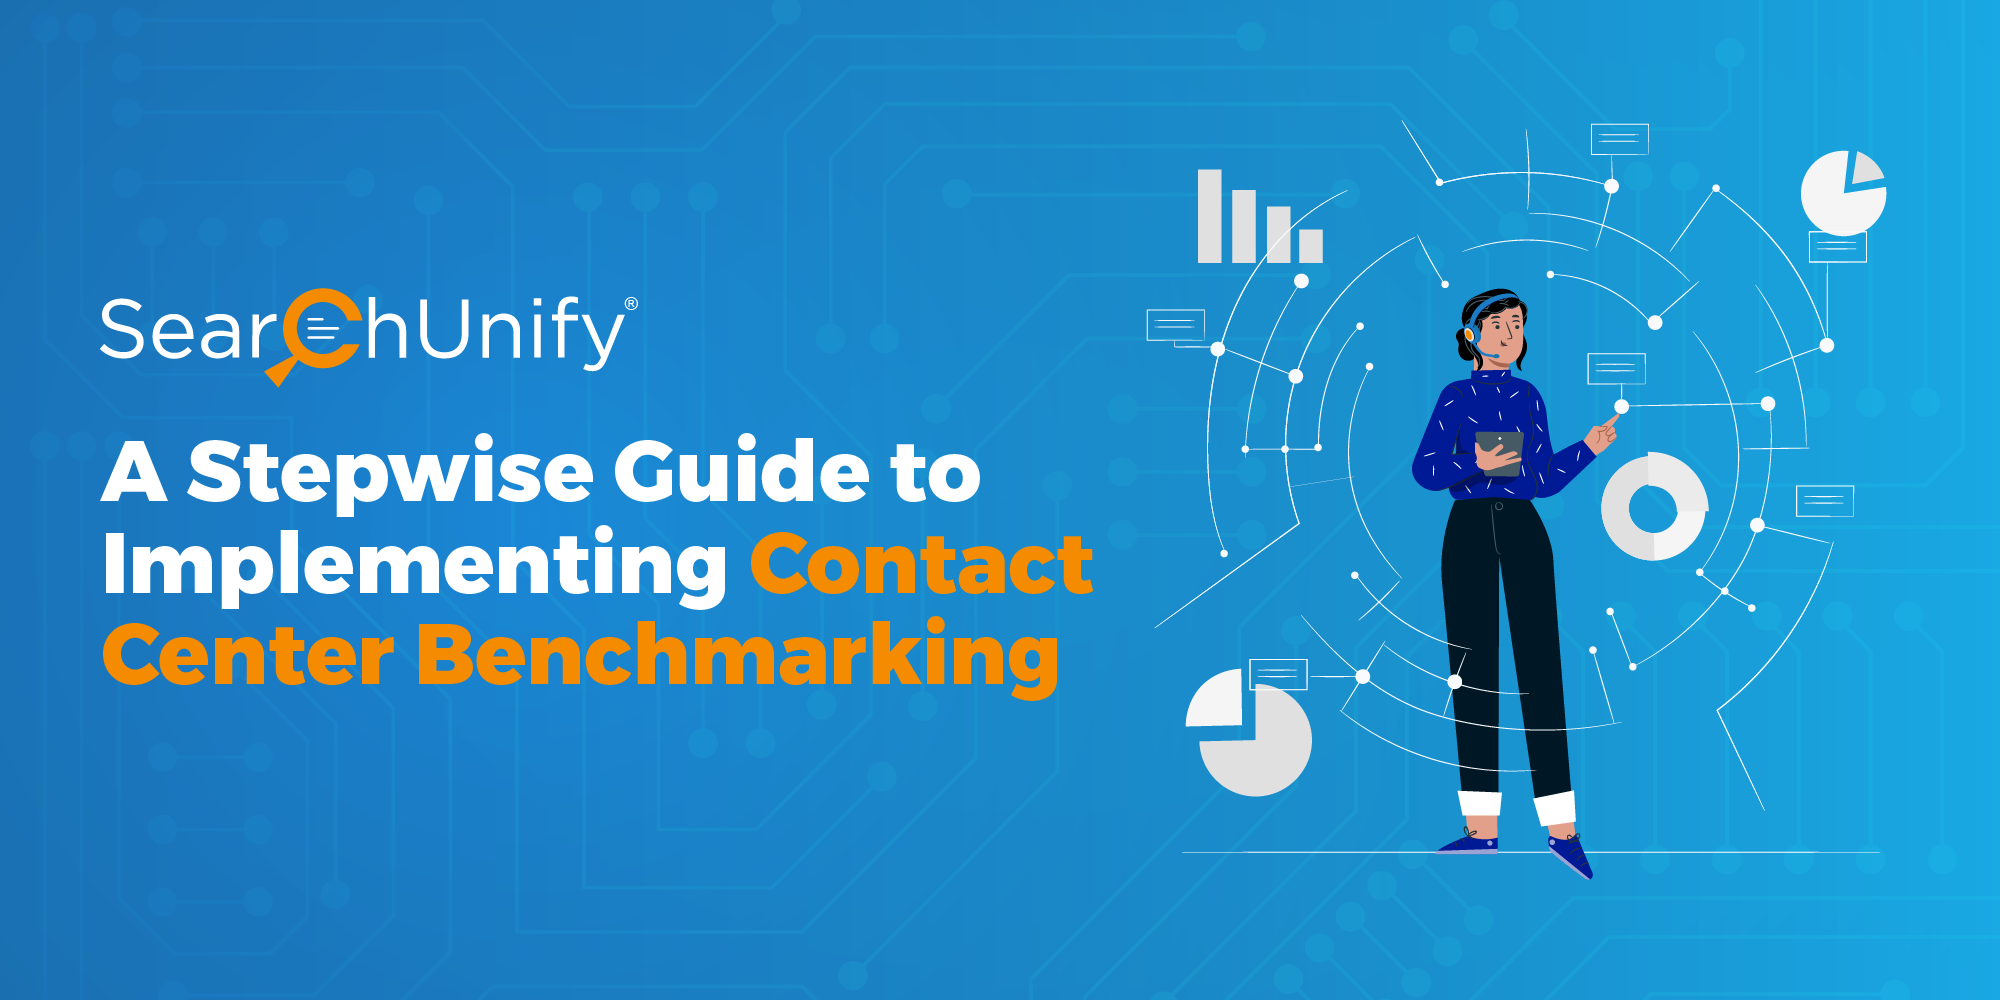 A Stepwise Guide to Implementing Contact Center Benchmarking